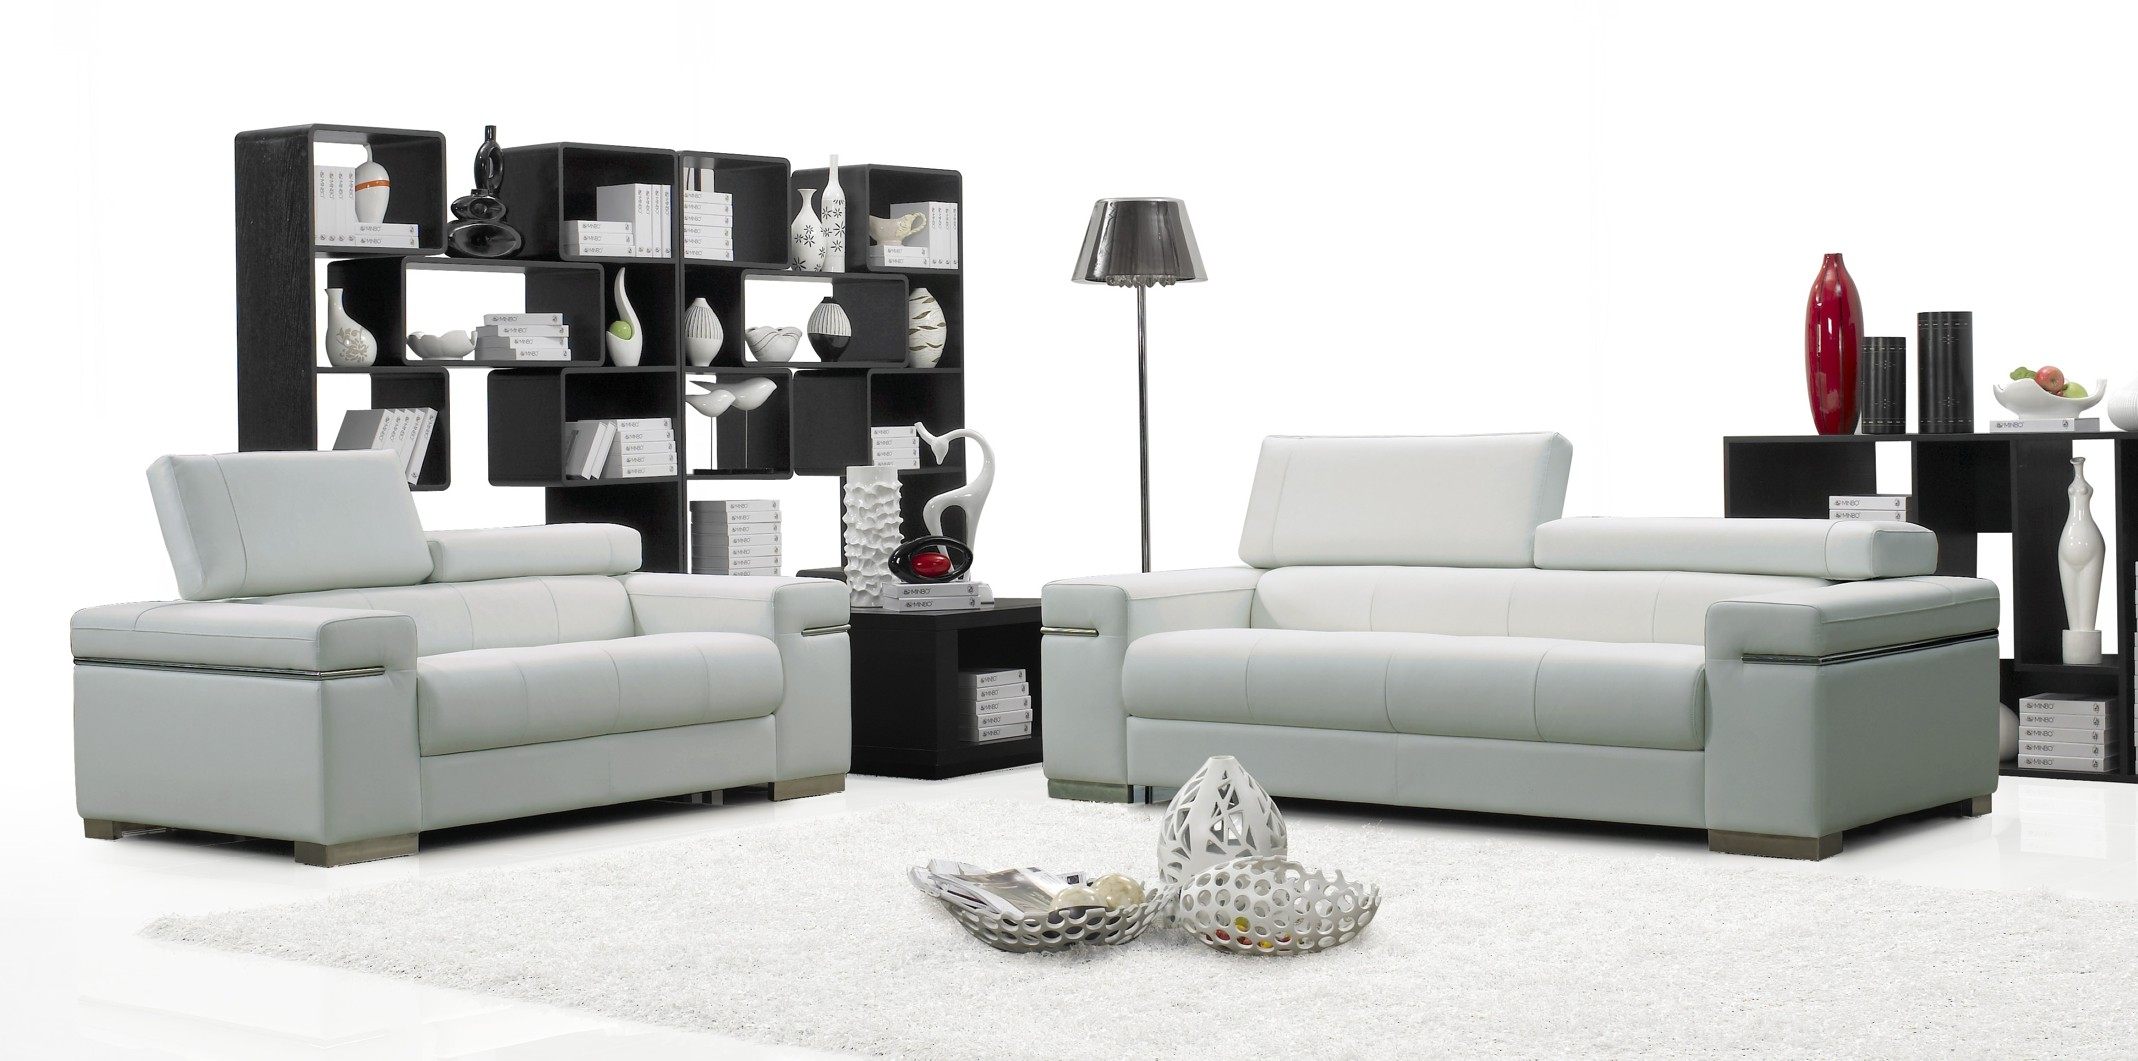 True modern furniture online homesfeed for Home furniture by design